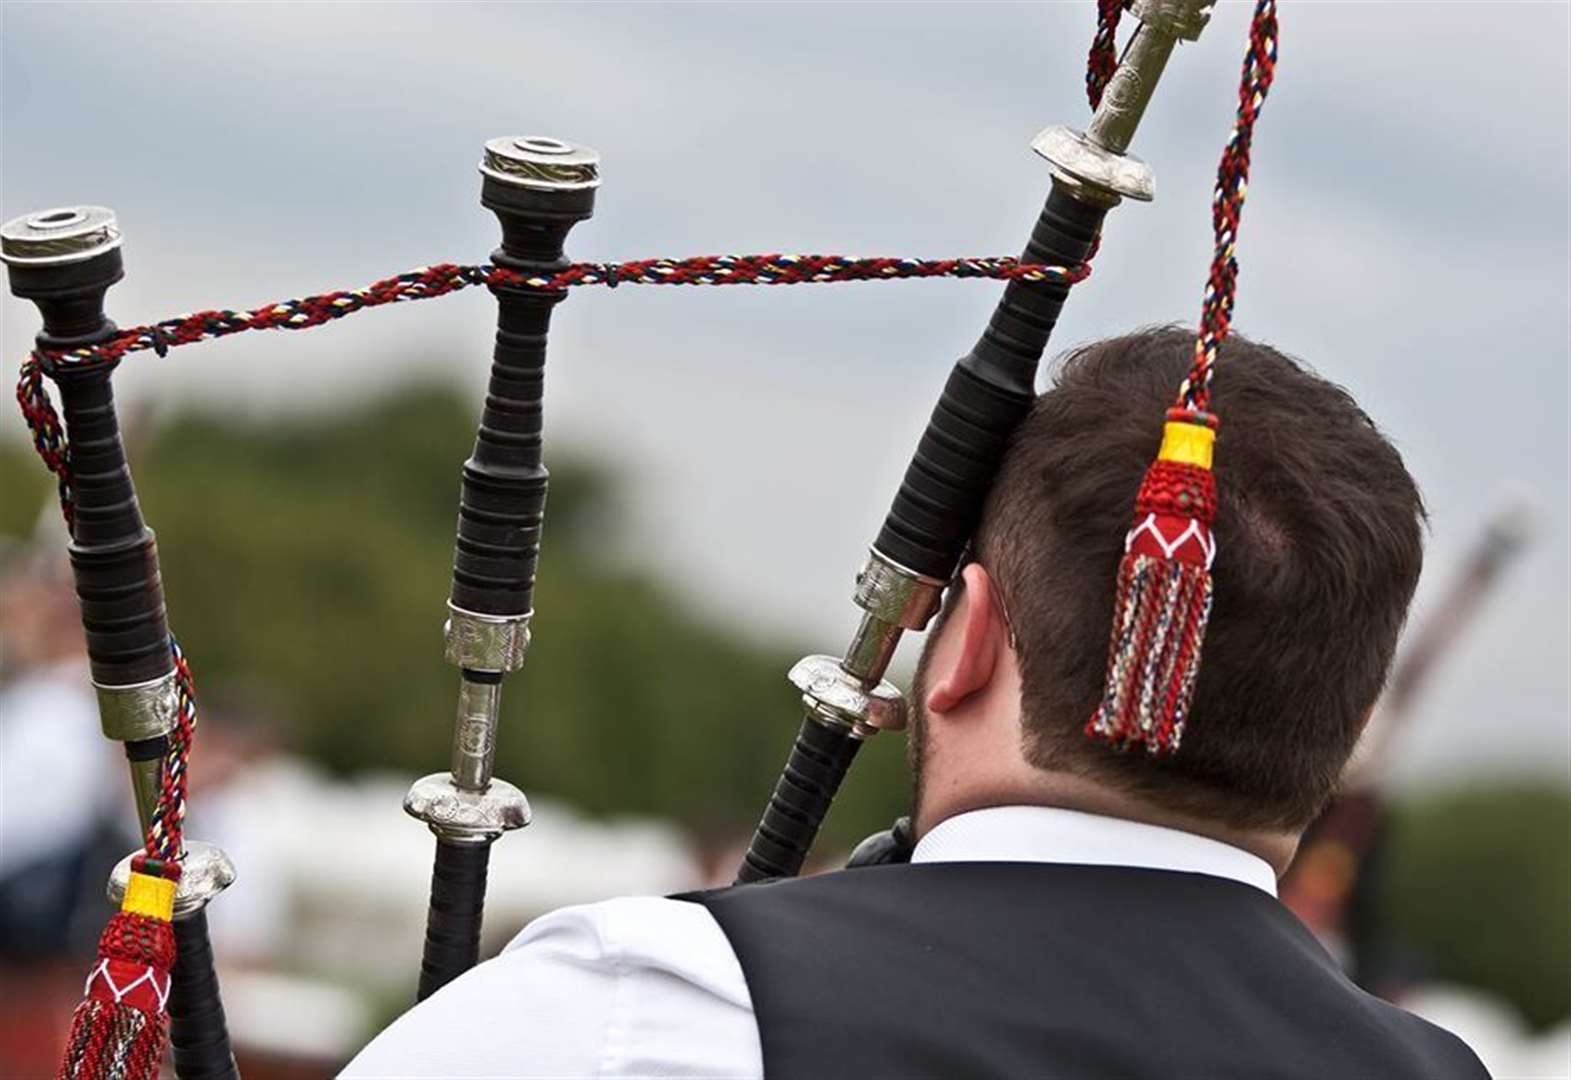 Moray pipers to join clapping chorus for key workers